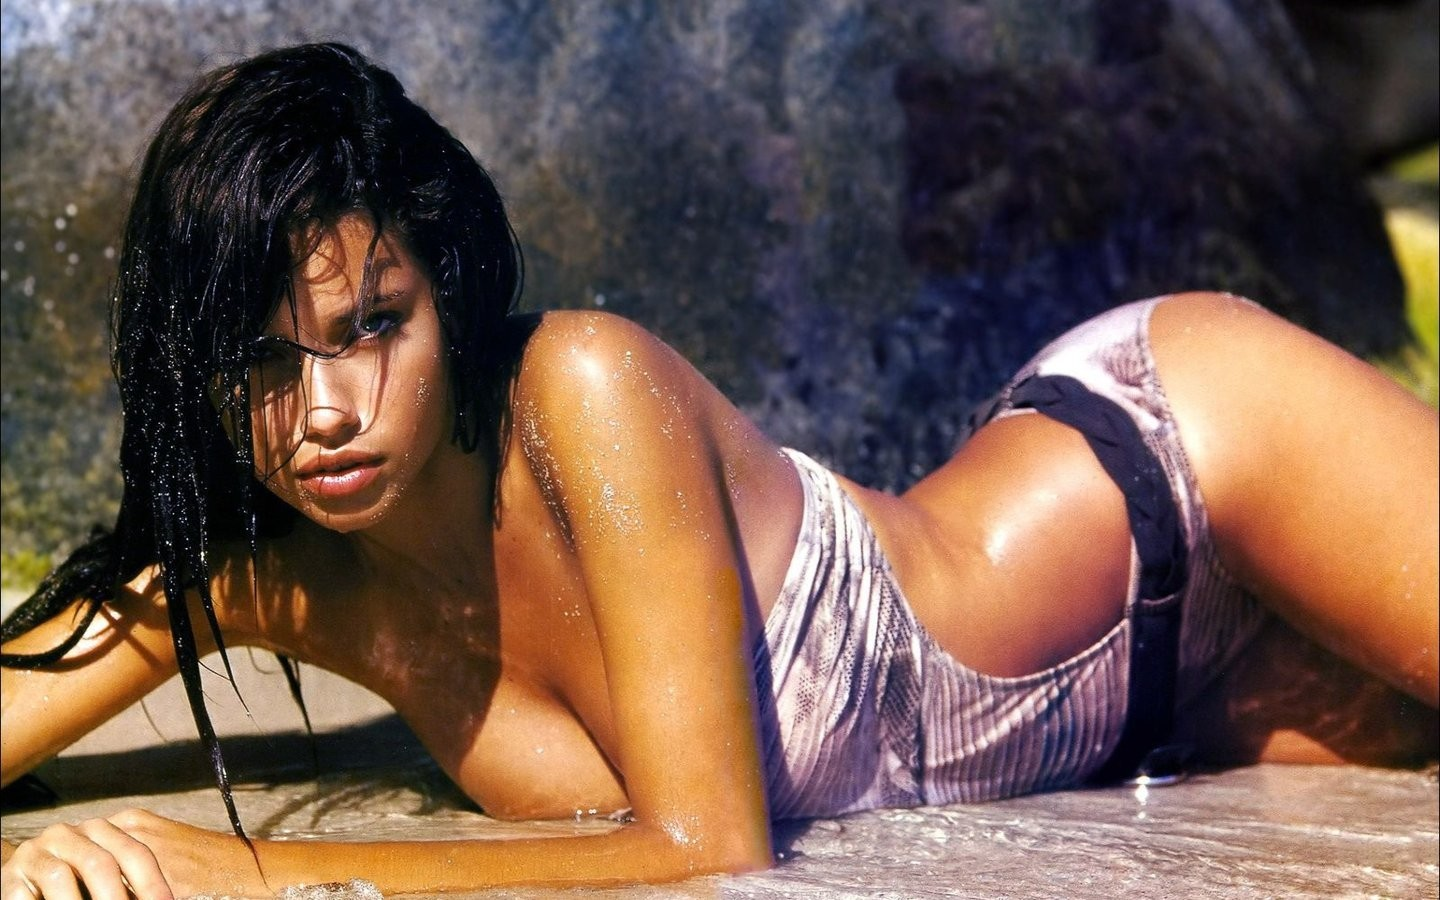 woman wet brunettes adriana lima wet clothing HD Wallpaper